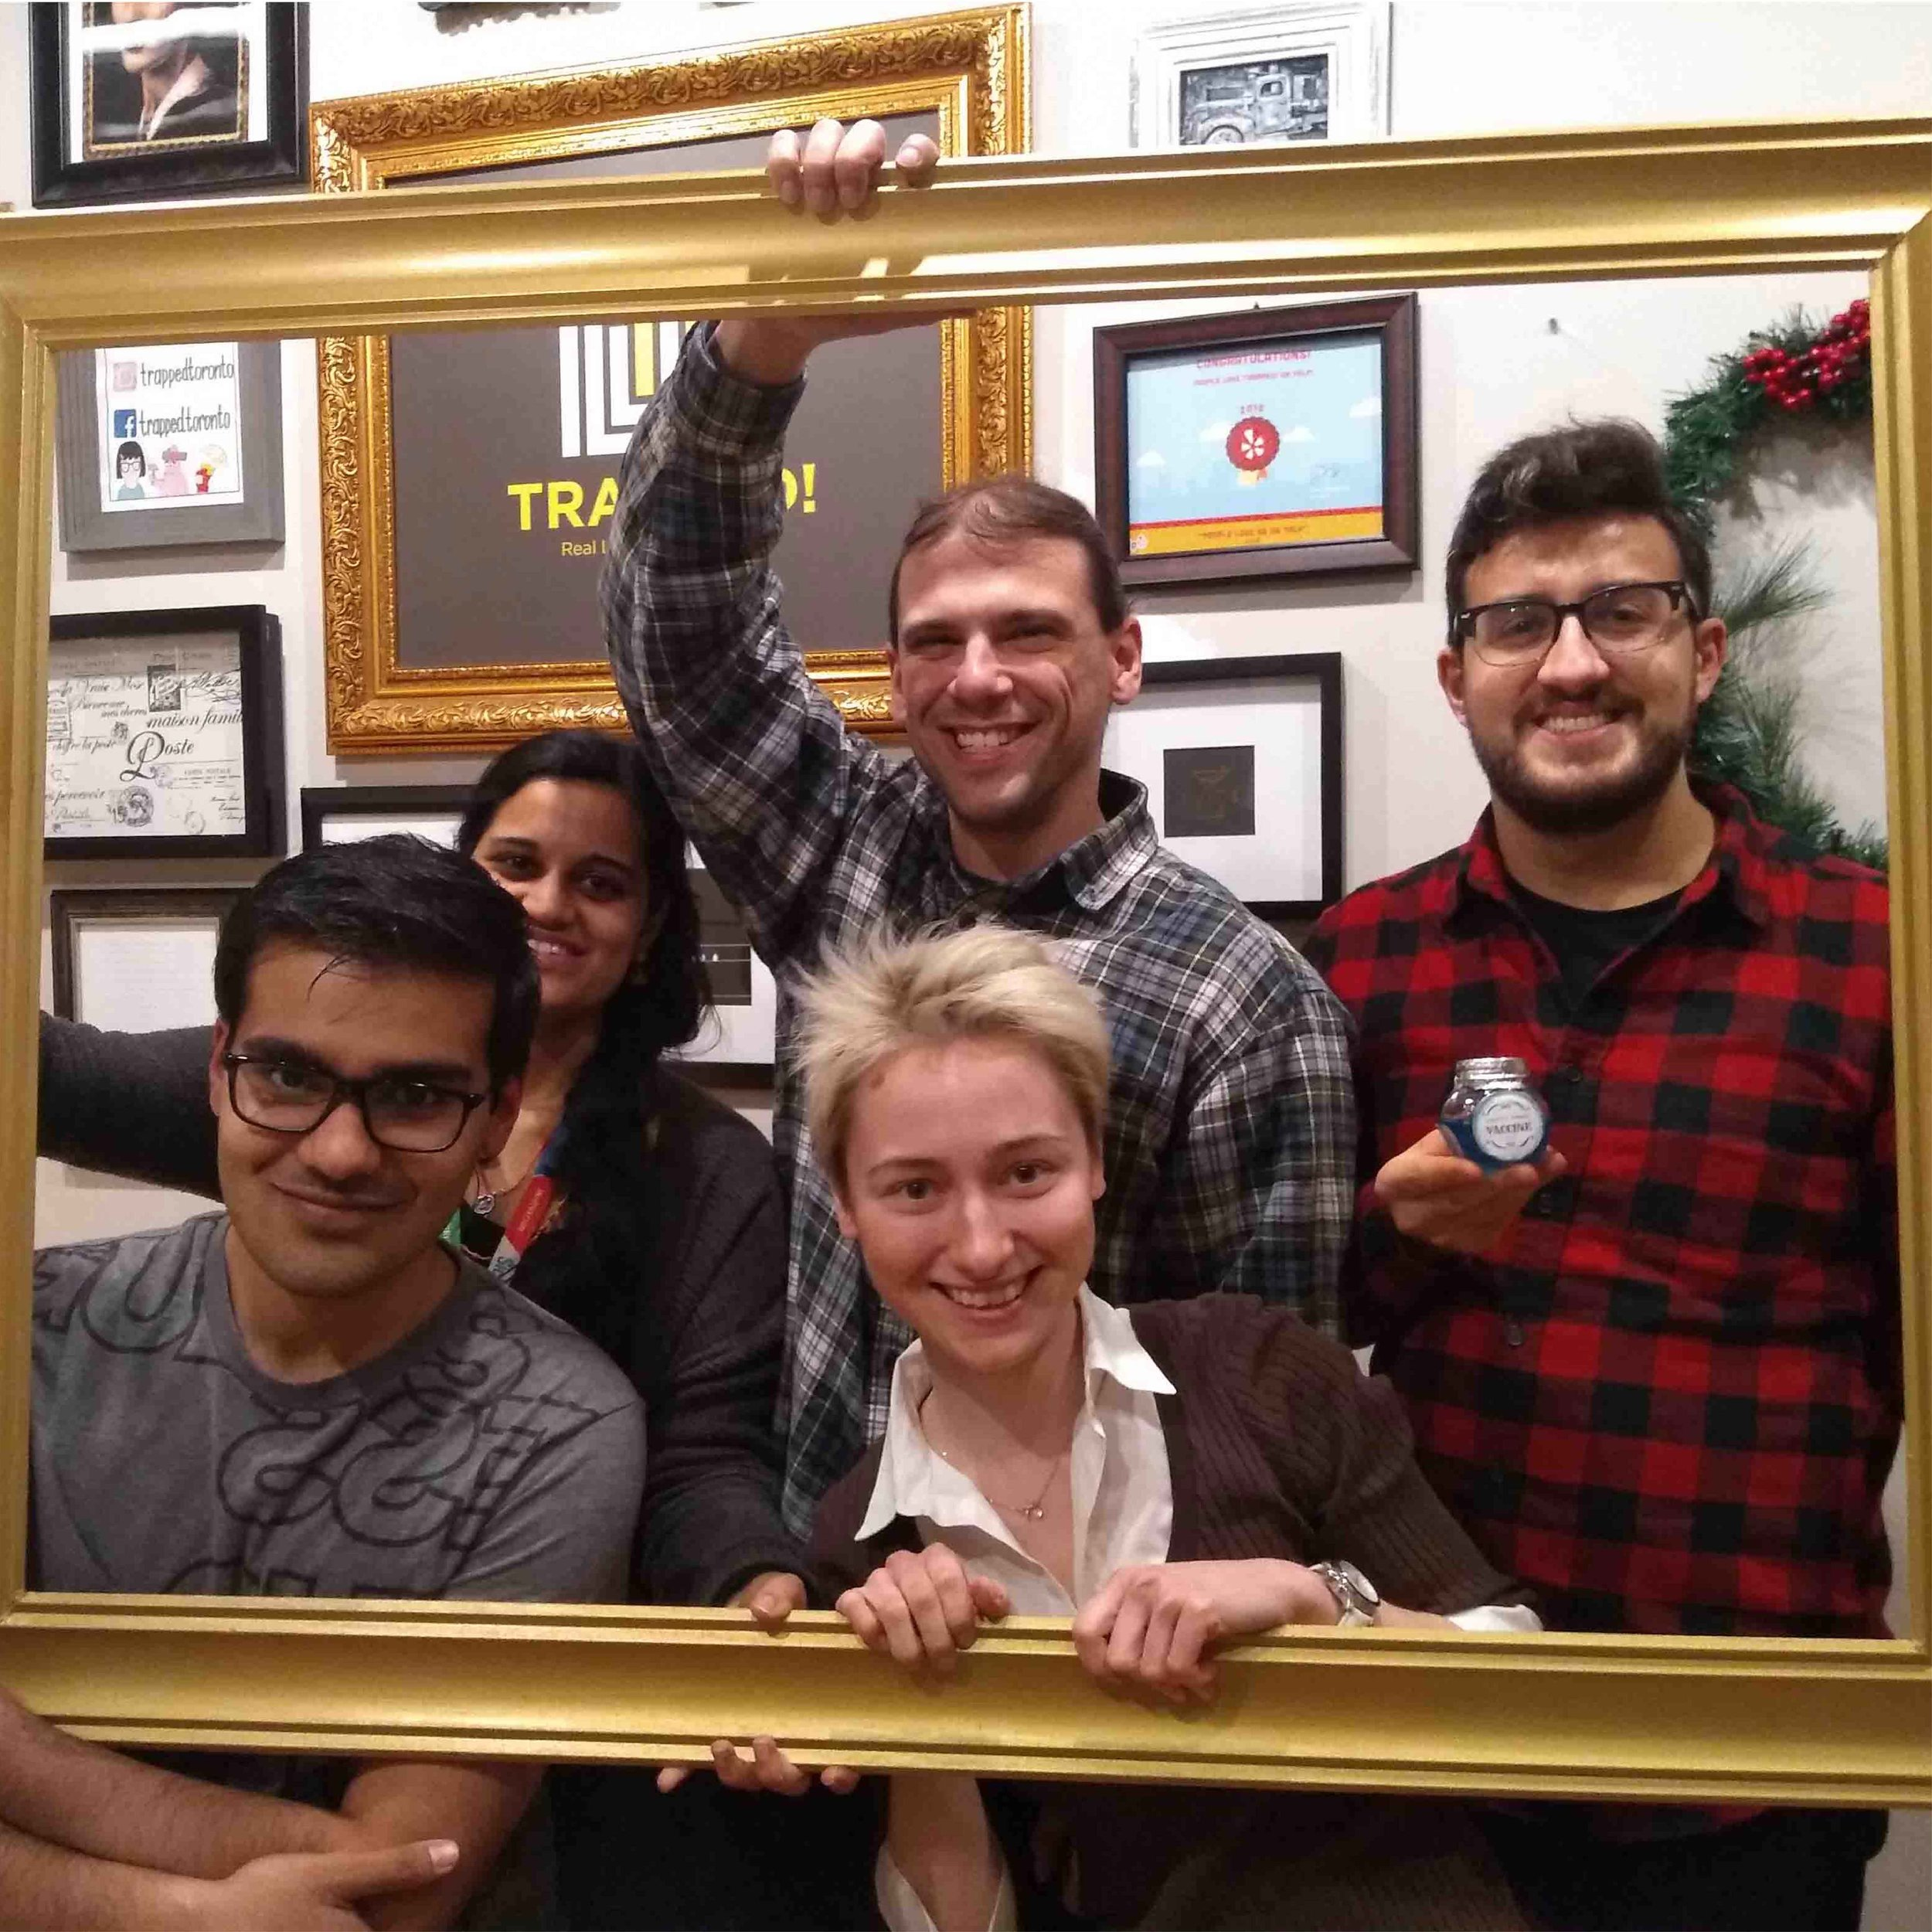 February 2019 – Escape room lab outing